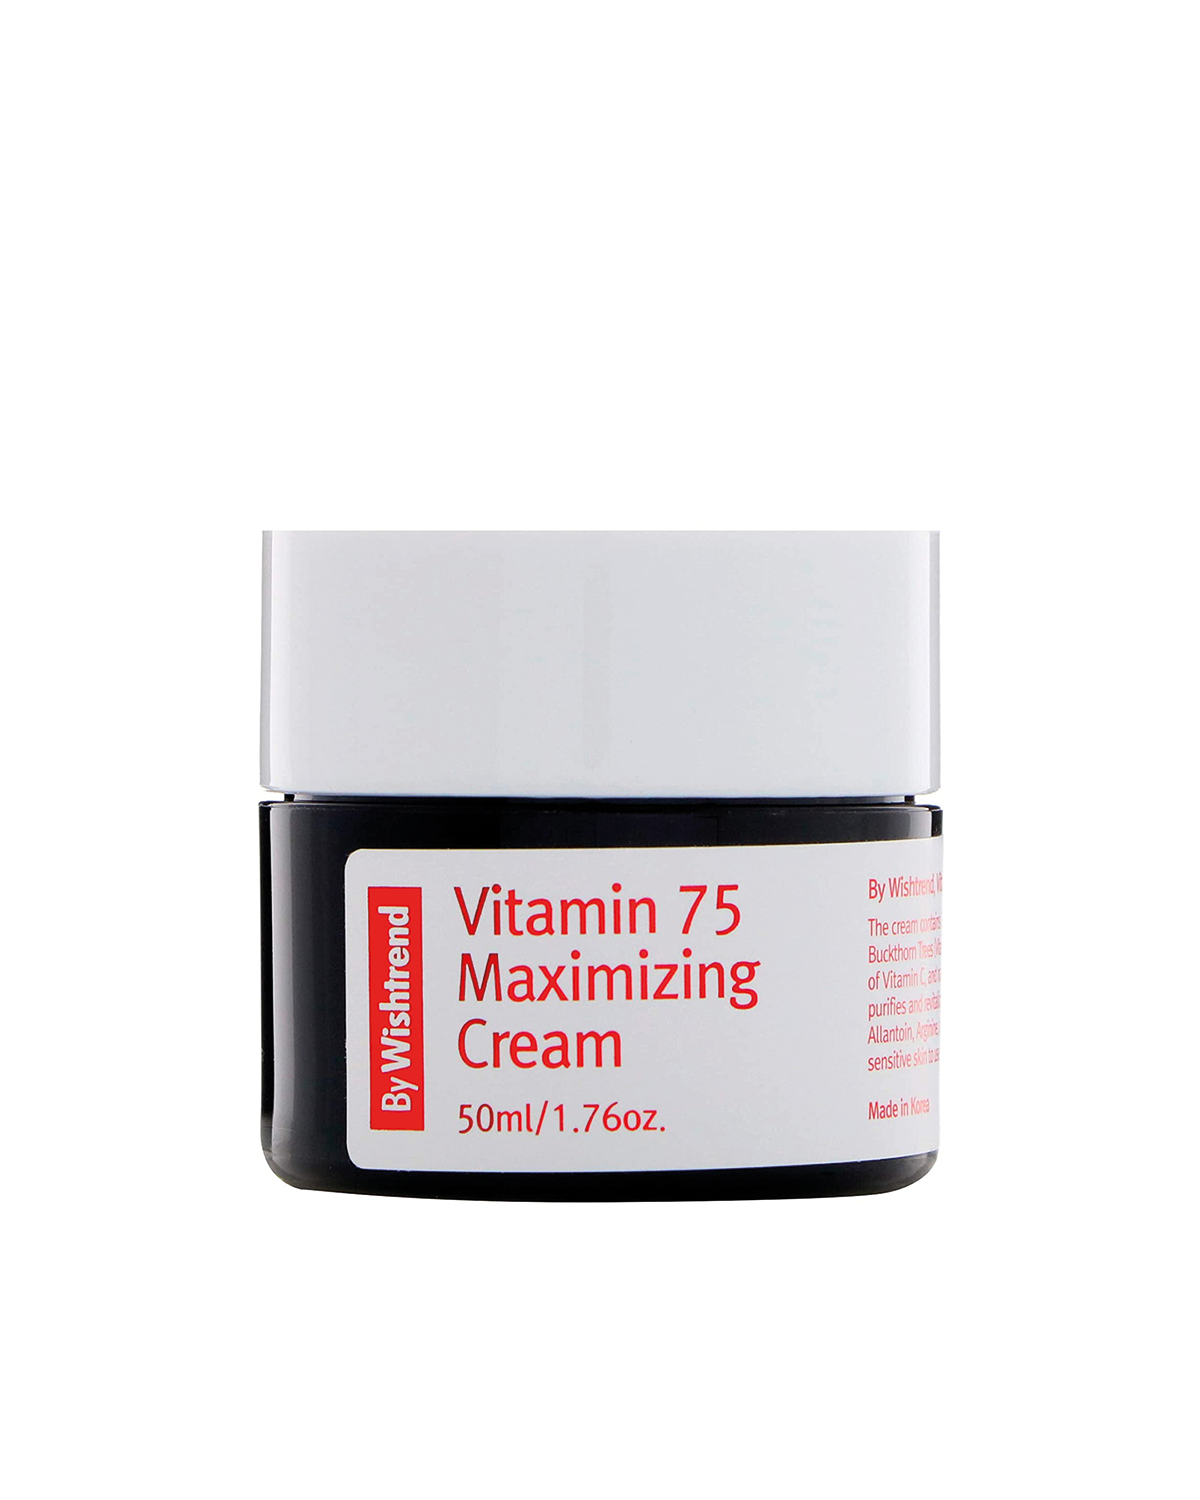 BY WISHTREND Vitamin 75 Maximizing Cream 50 ml